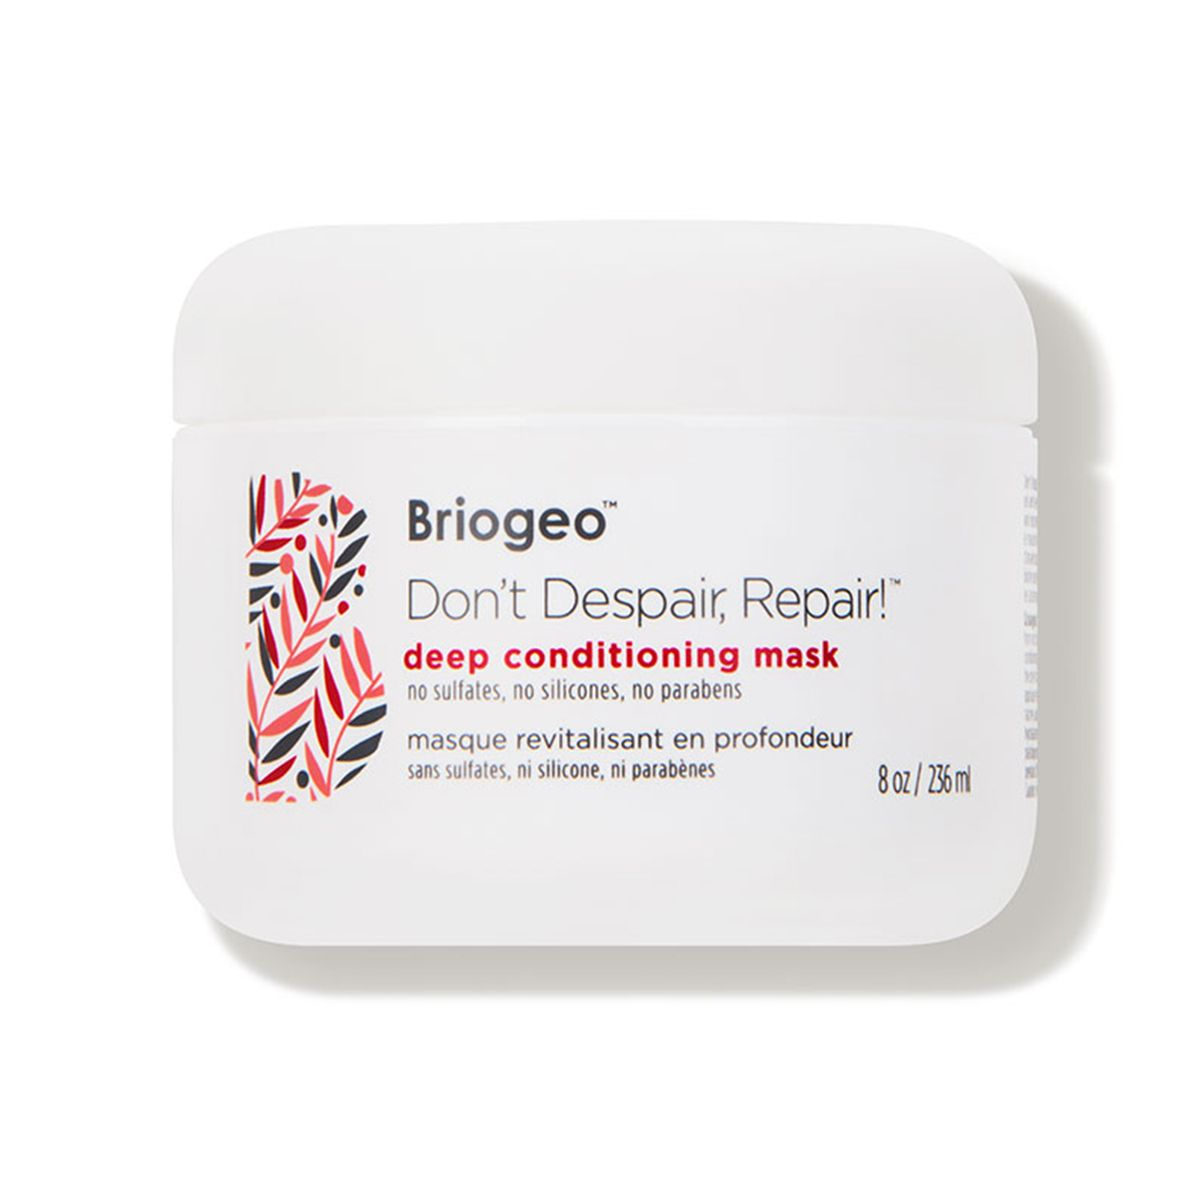 42 Life-Changing Beauty Products From Amazon, Sephora, and Dermstore - best beauty products amazon sephora dermstore 292615 1617915762384